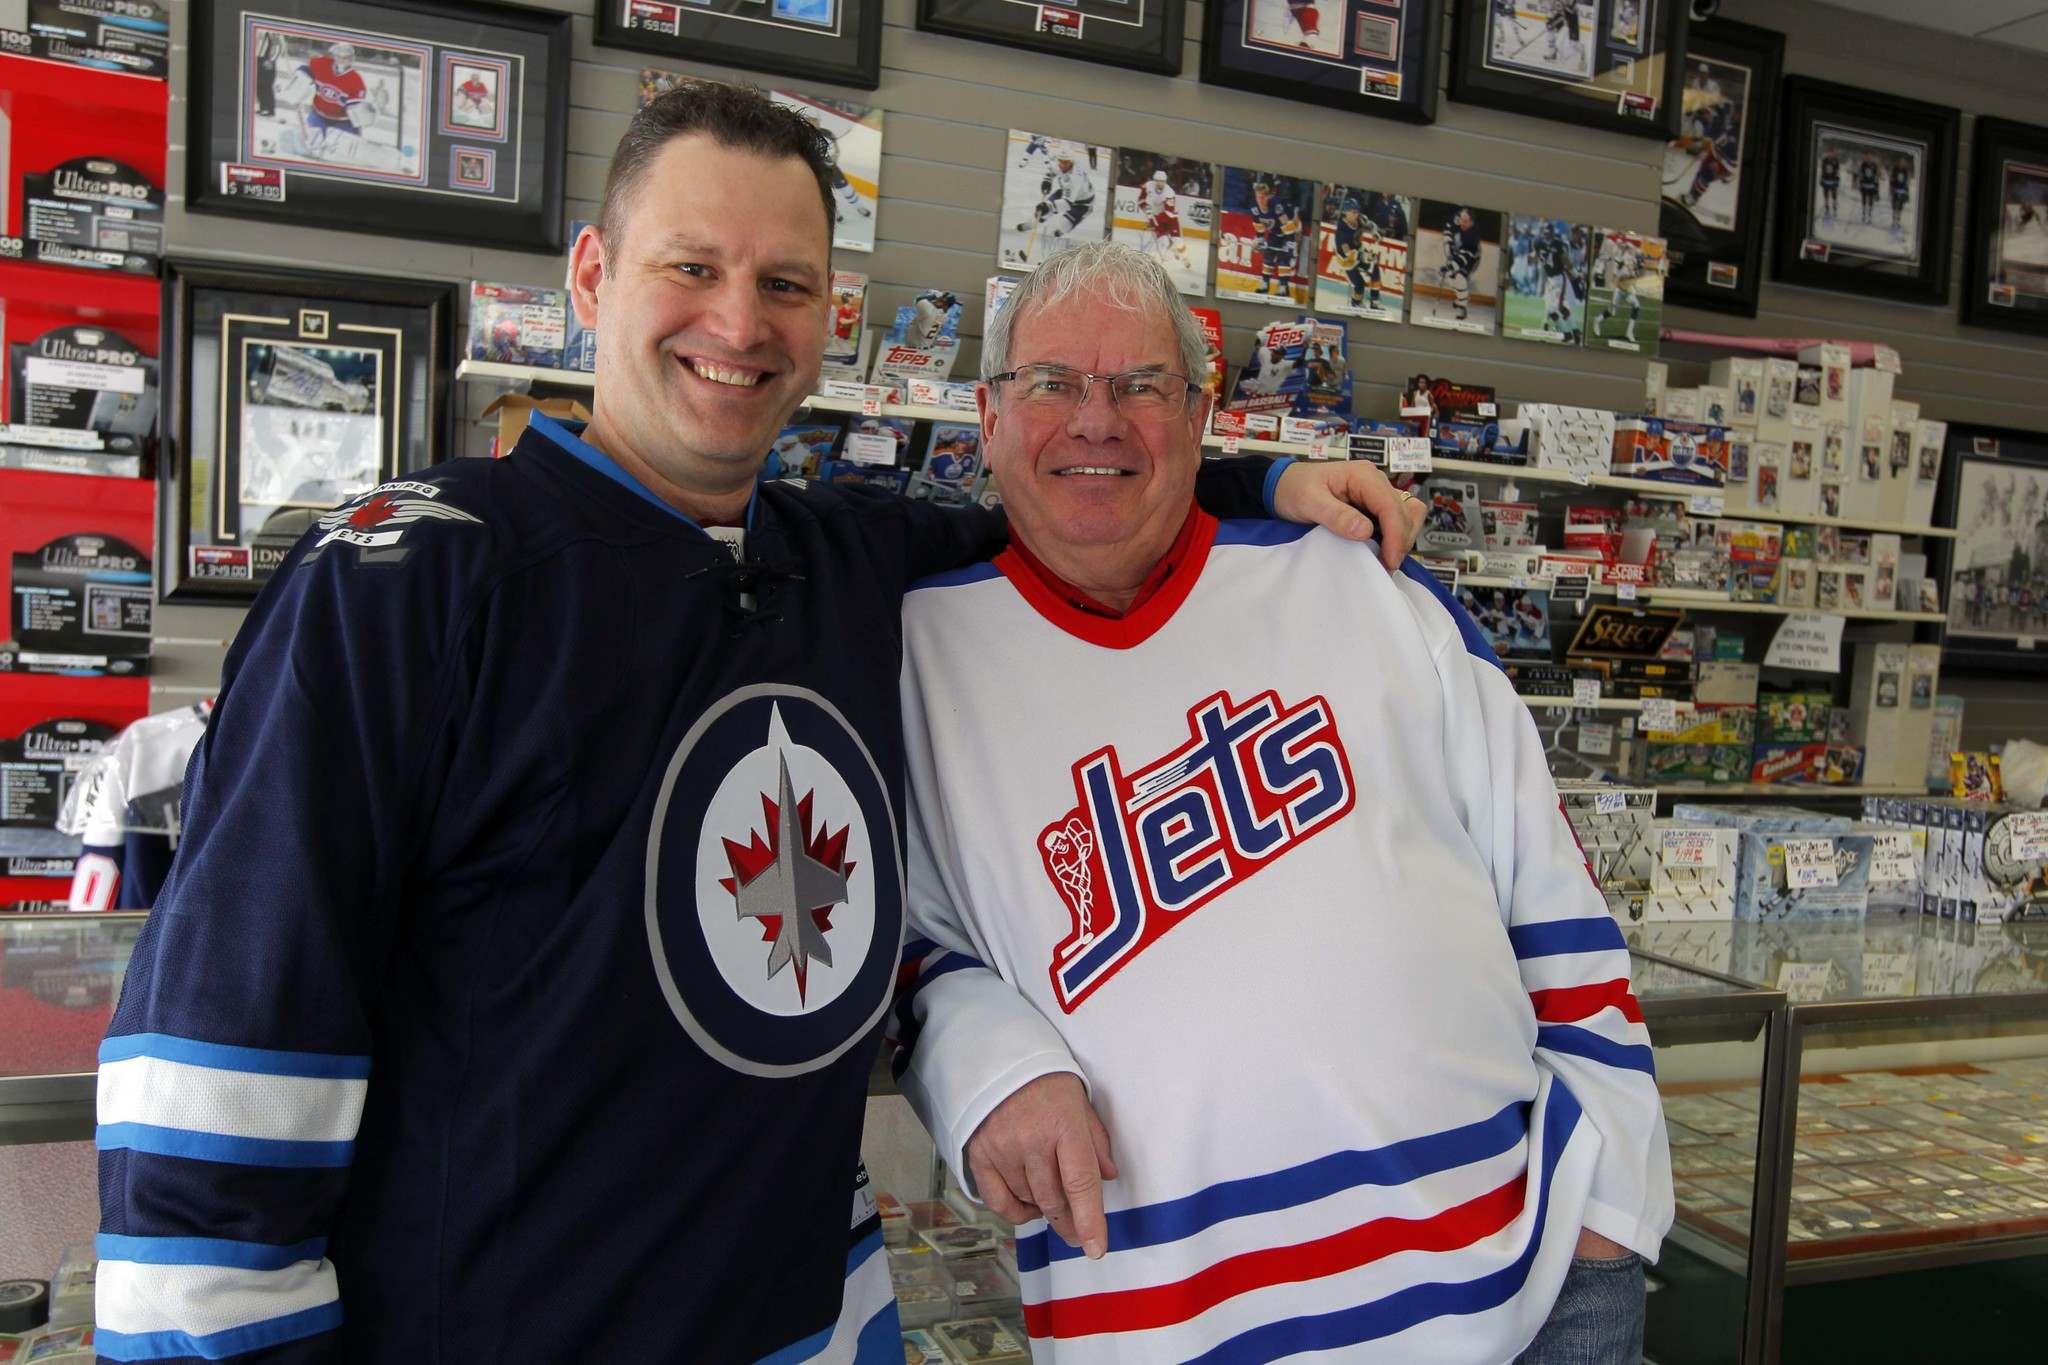 BORIS MINKEVICH / WINNIPEG FREE PRESS</p><p>Joe Daley (right), seen here with his son Travis in 2014, operates Joe Daley&#39;s Sports Cards. He opened the store 10 years after he retired from playing hockey.</p>